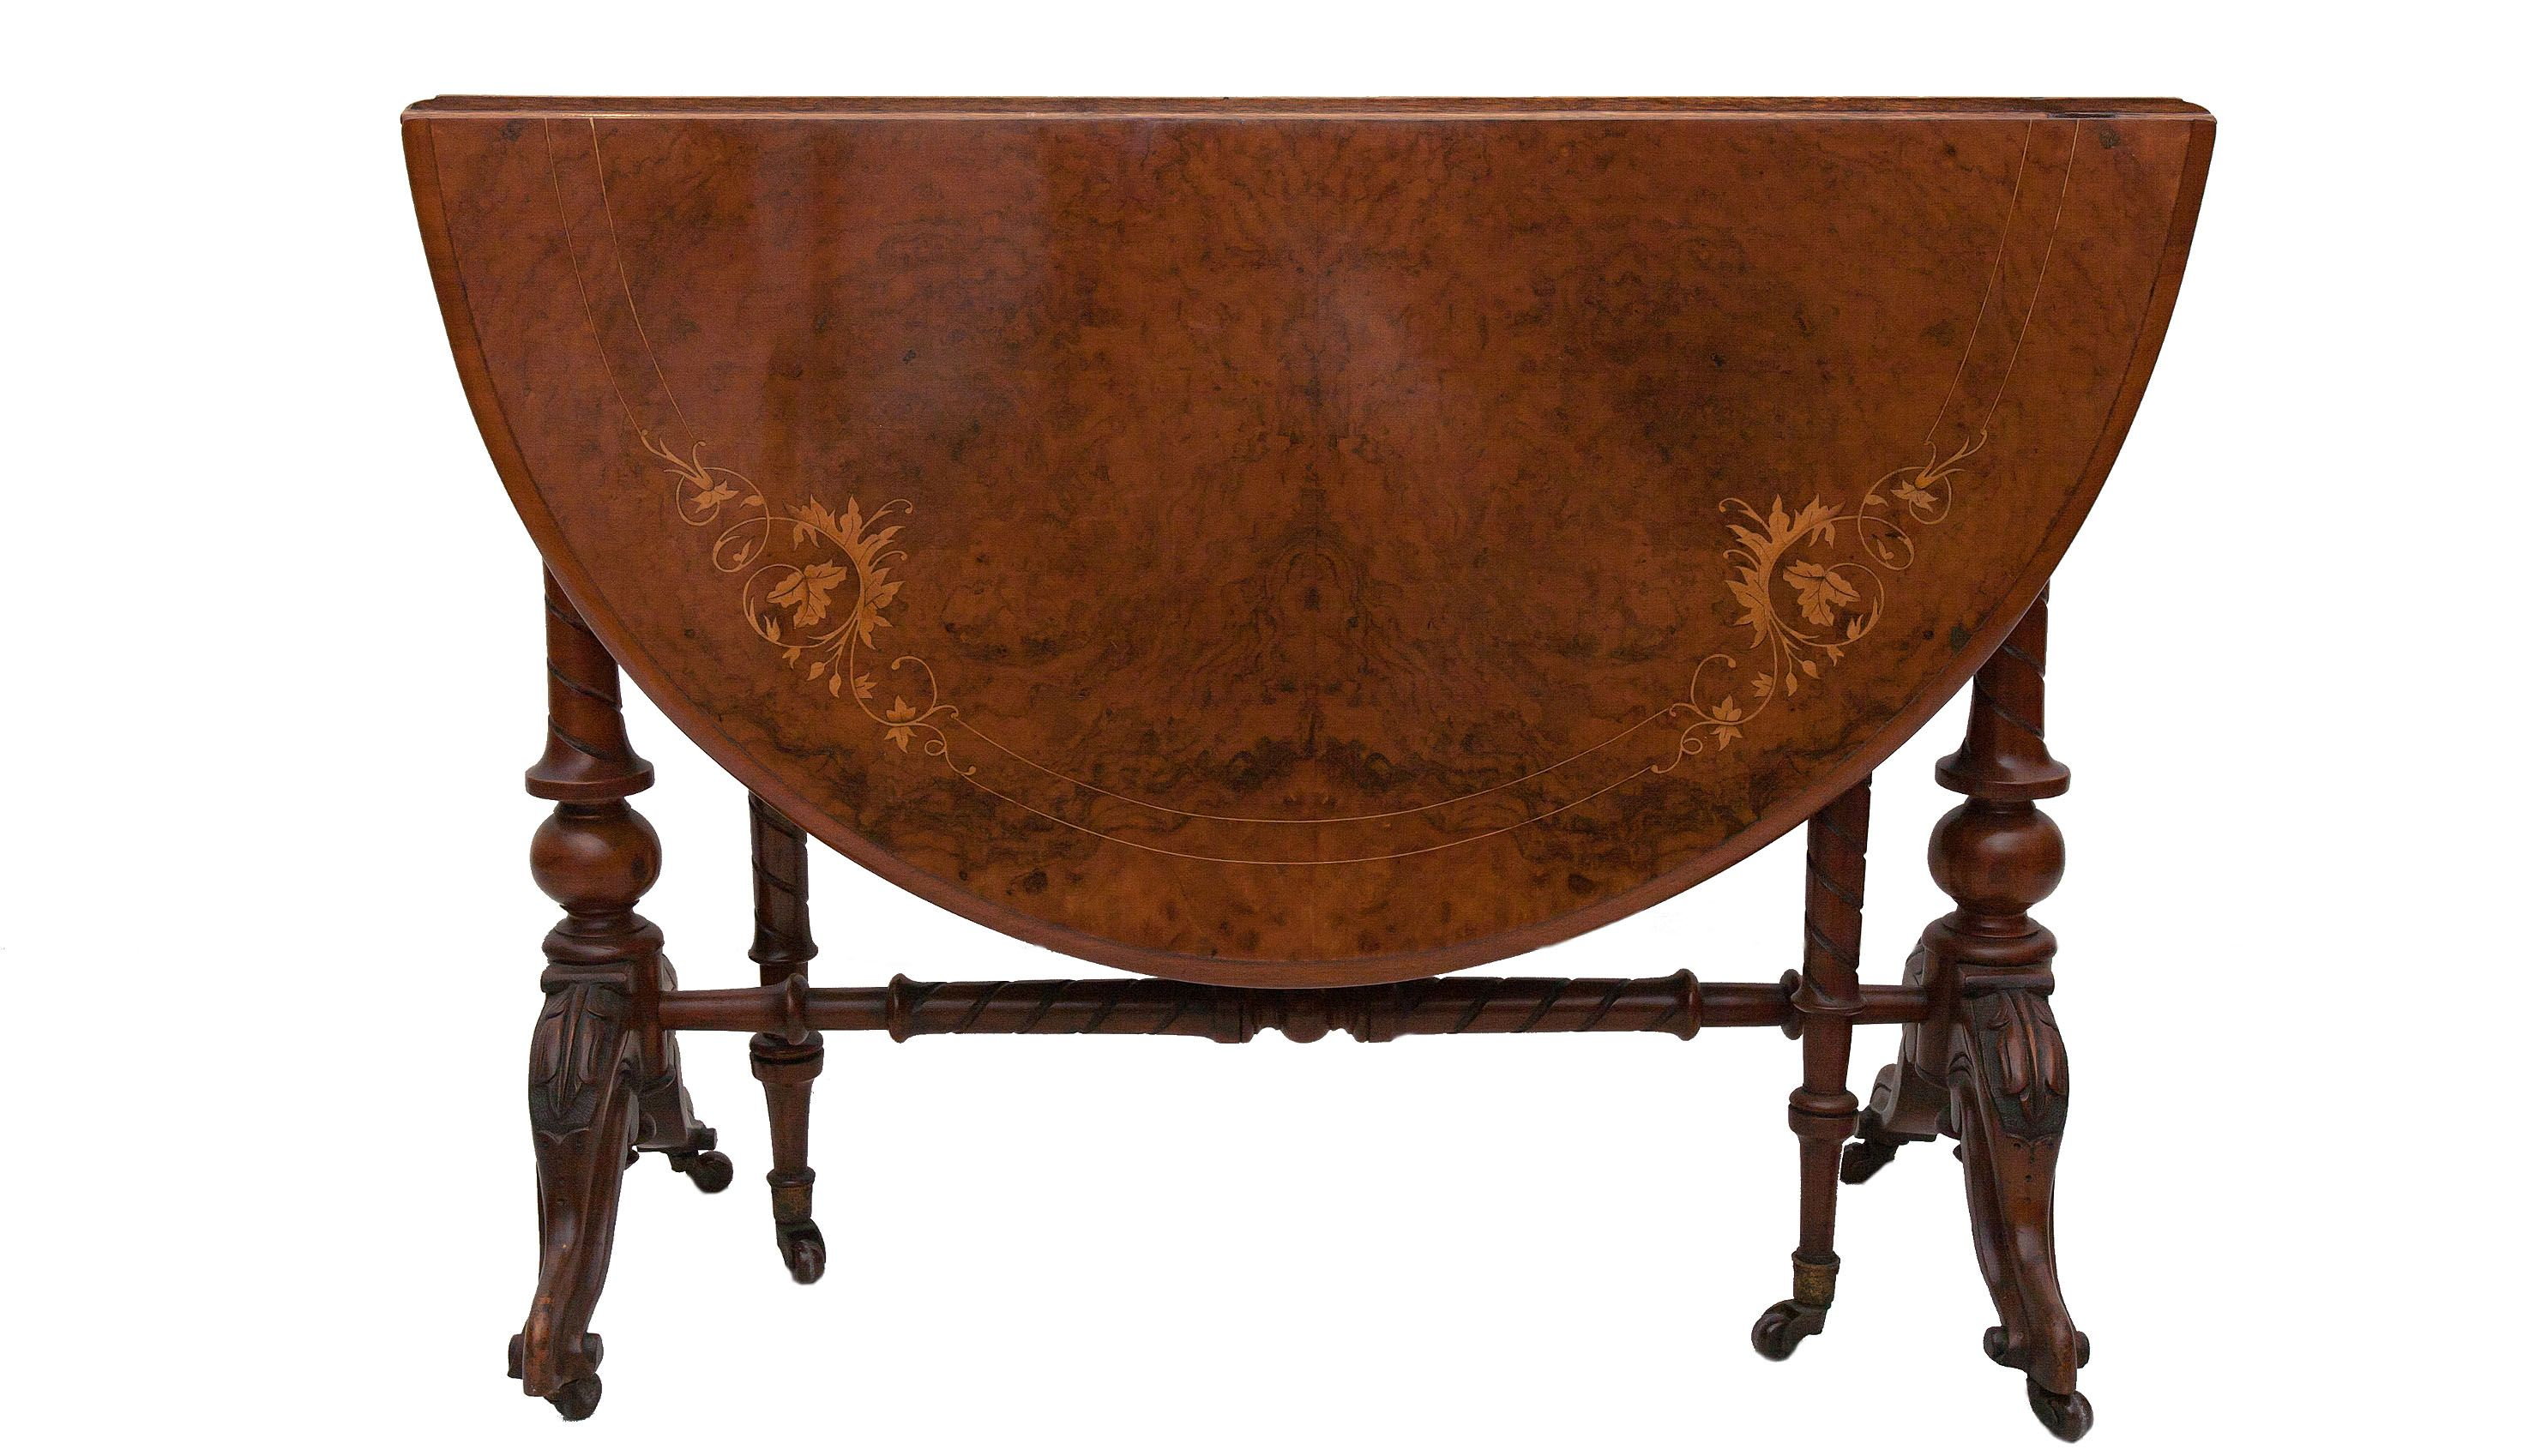 A stunning walnut veneered drop-leaf Sutherland table with beautiful leaf decorative inlay. Exquisitely carved and supported on two columns united with turned stretcher and two swinging legs raised up on brass ceramic cabriole casters.                                    C.1870